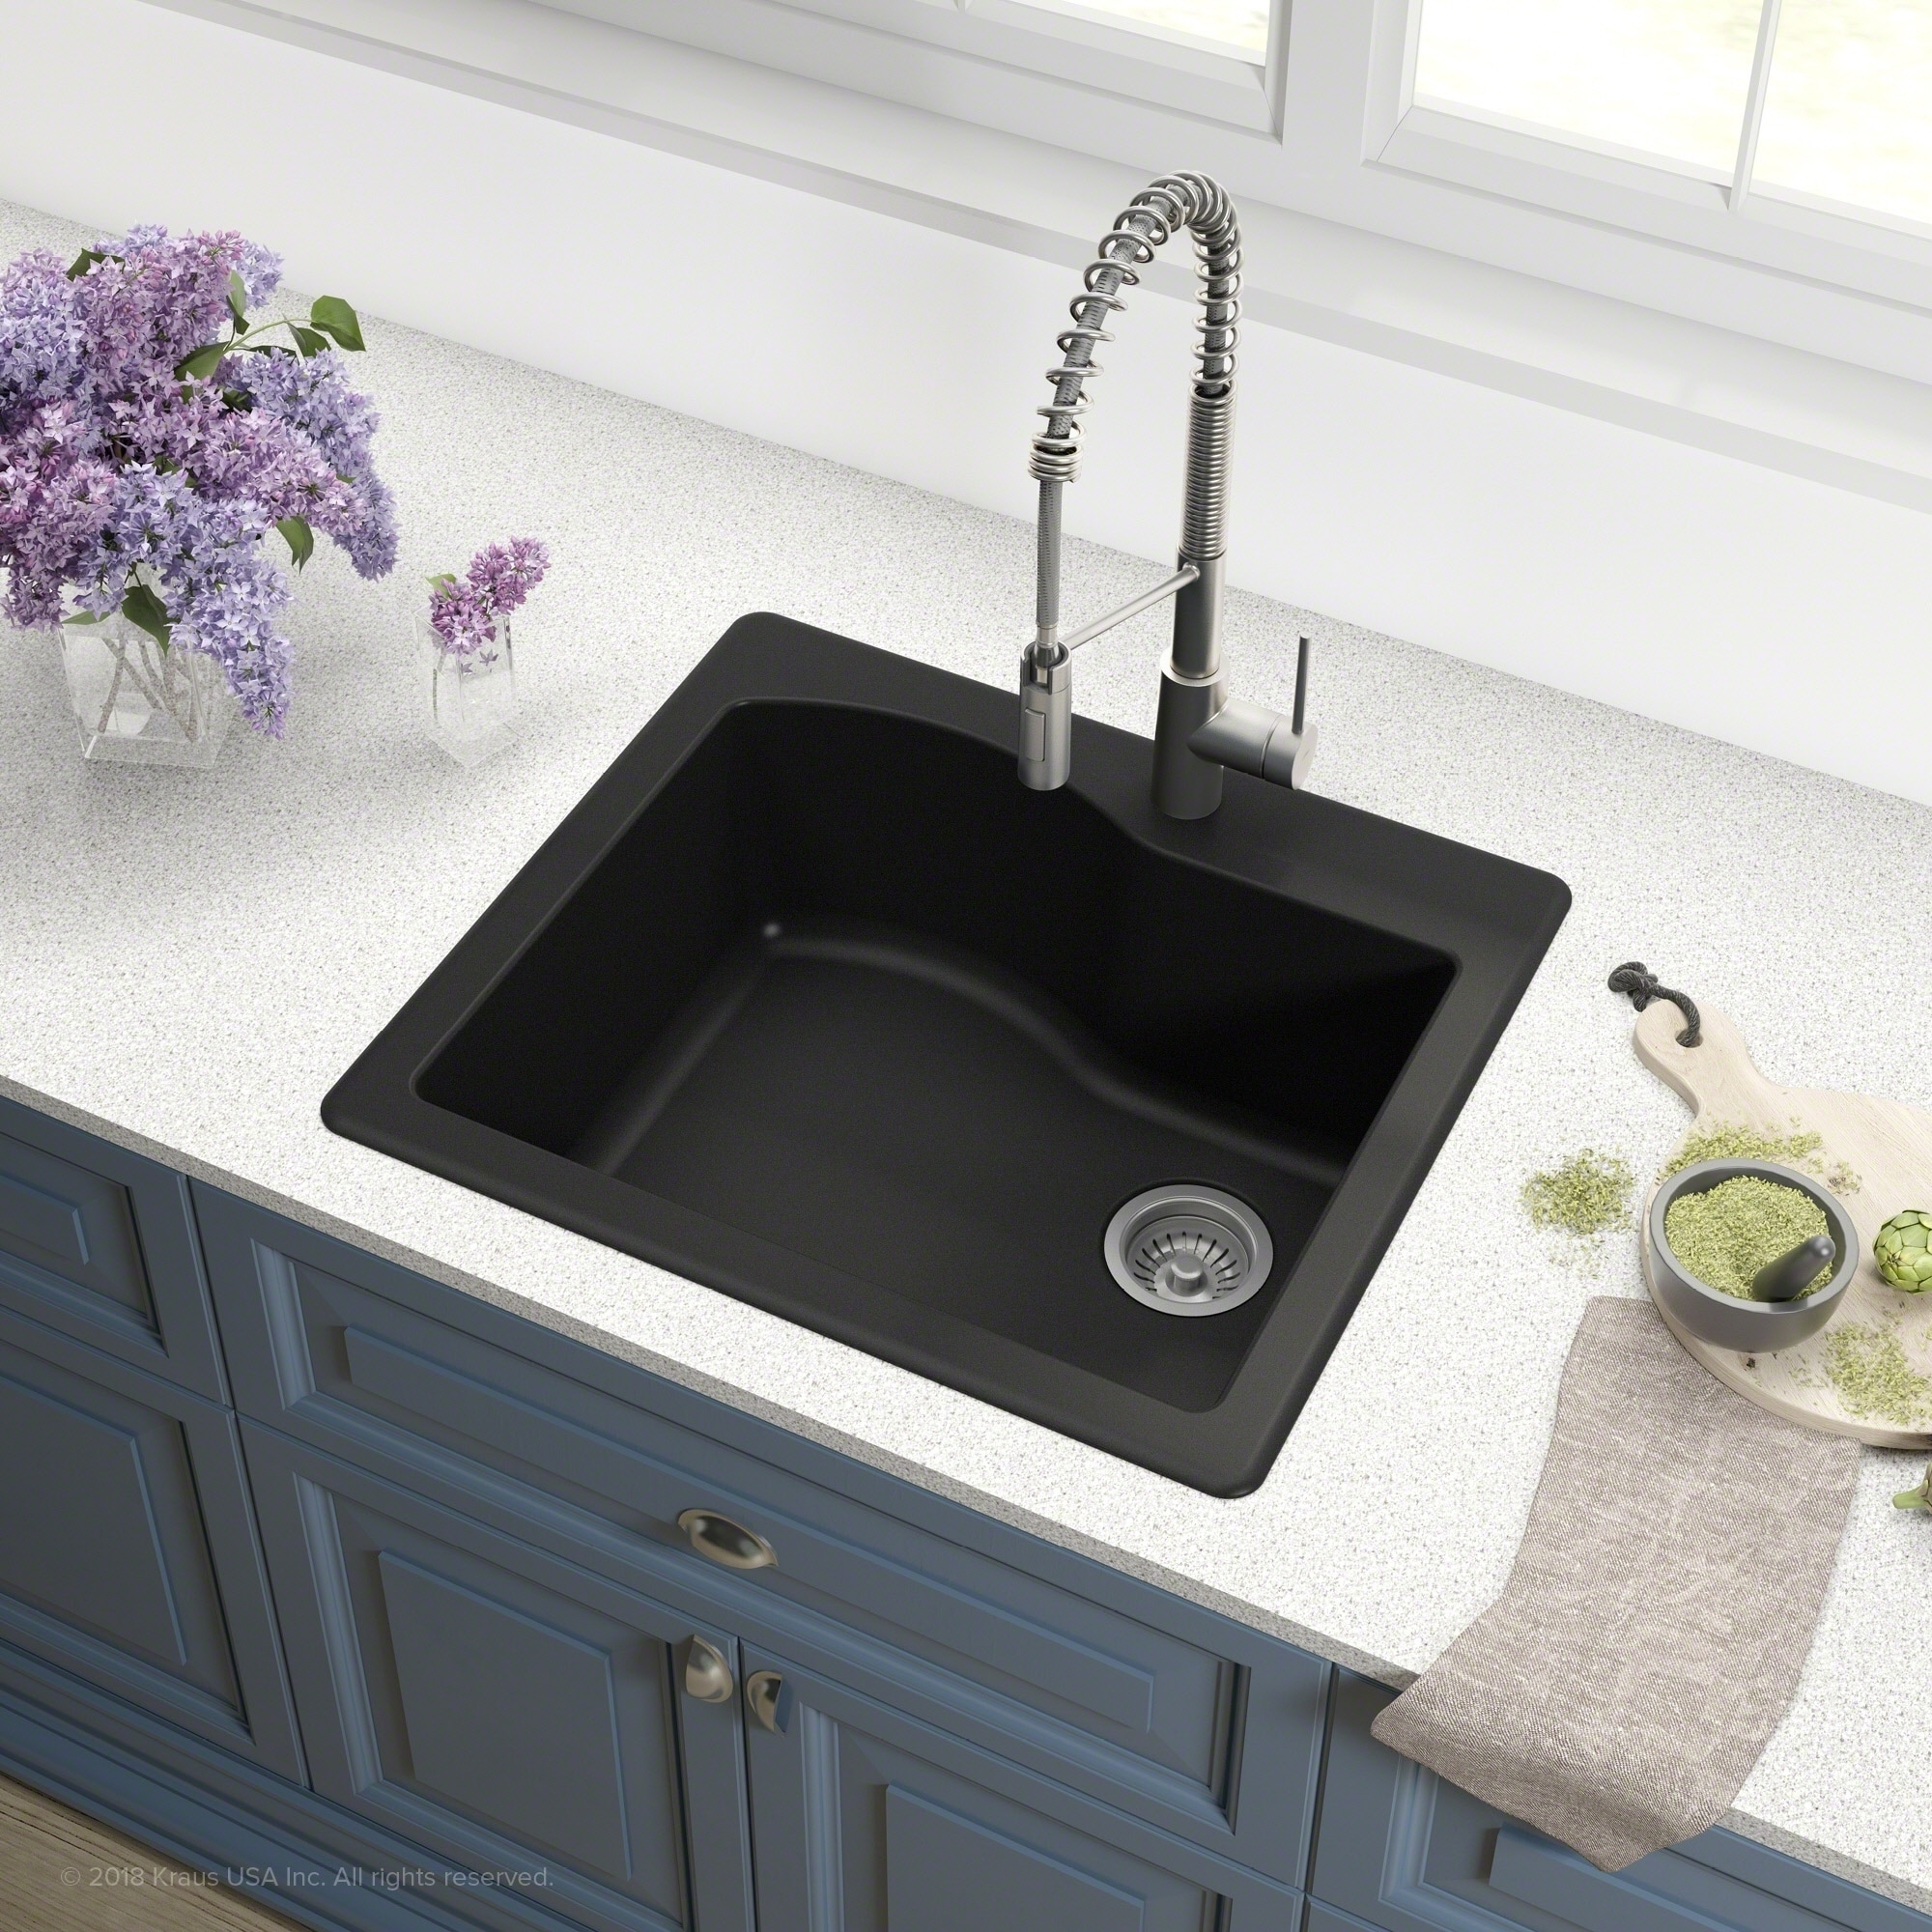 Shop Kraus Kgd 441 Quarza 25 In Undermount Drop In Dual Mount 1 Bowl